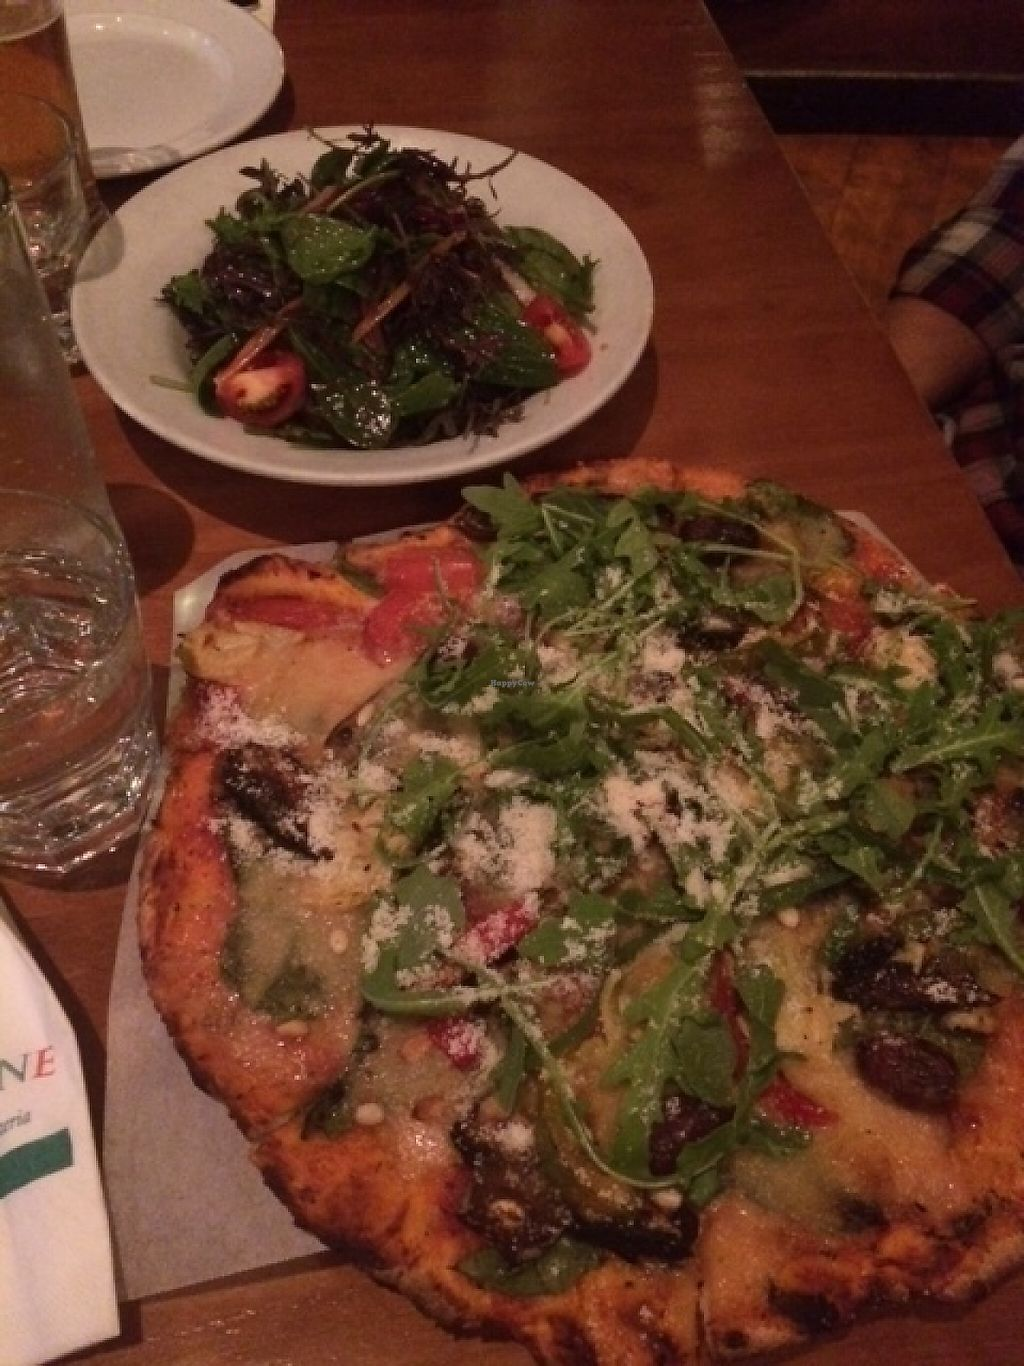 """Photo of Tutto Bene  by <a href=""""/members/profile/maddywa"""">maddywa</a> <br/>Pizza and salad YUM! <br/> May 9, 2017  - <a href='/contact/abuse/image/65435/257261'>Report</a>"""